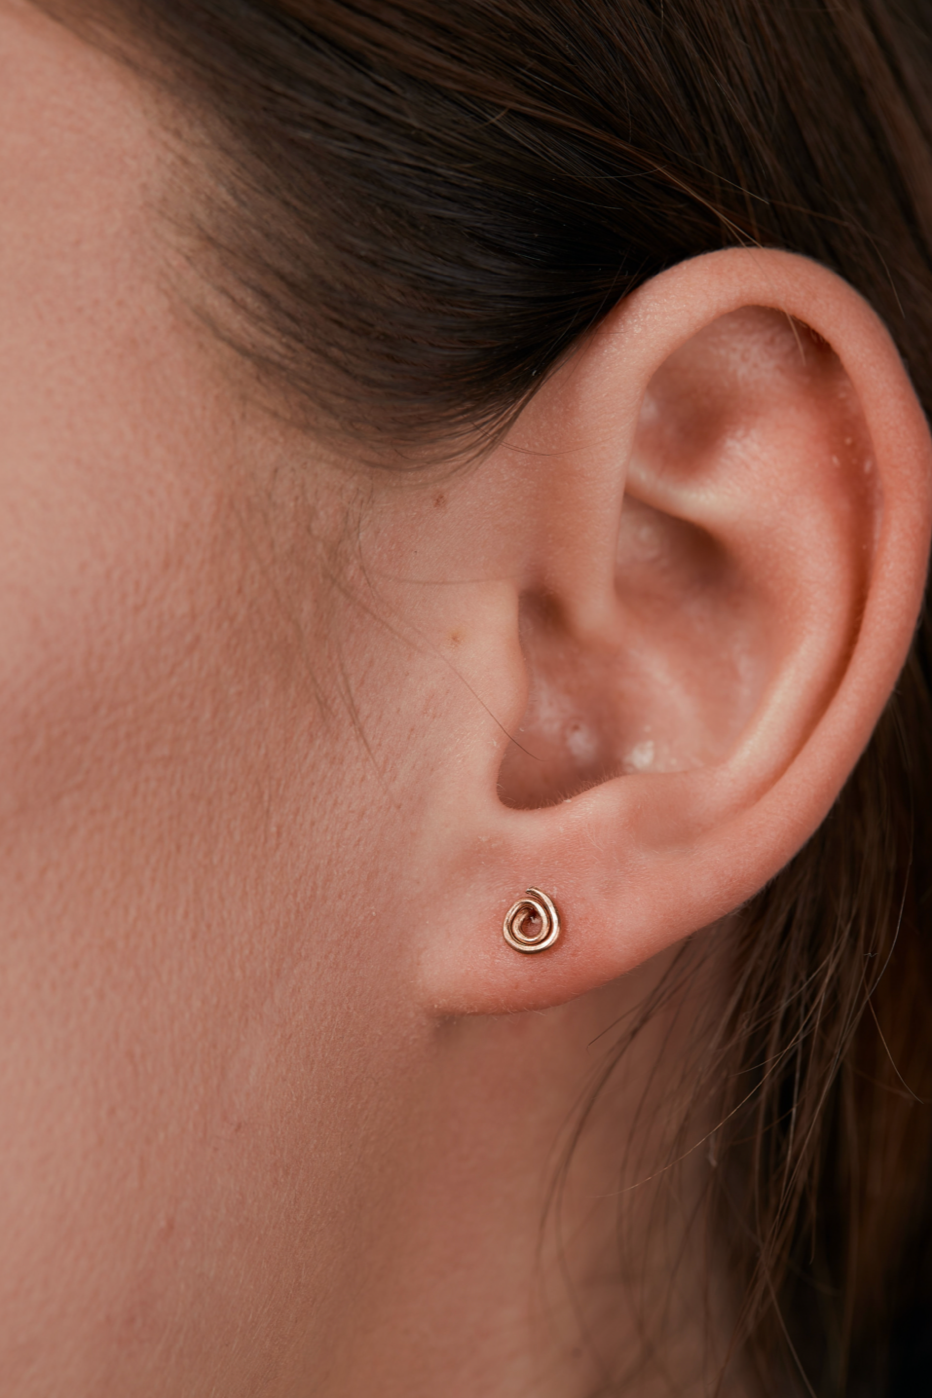 Copper Stud Earrings in womans ear